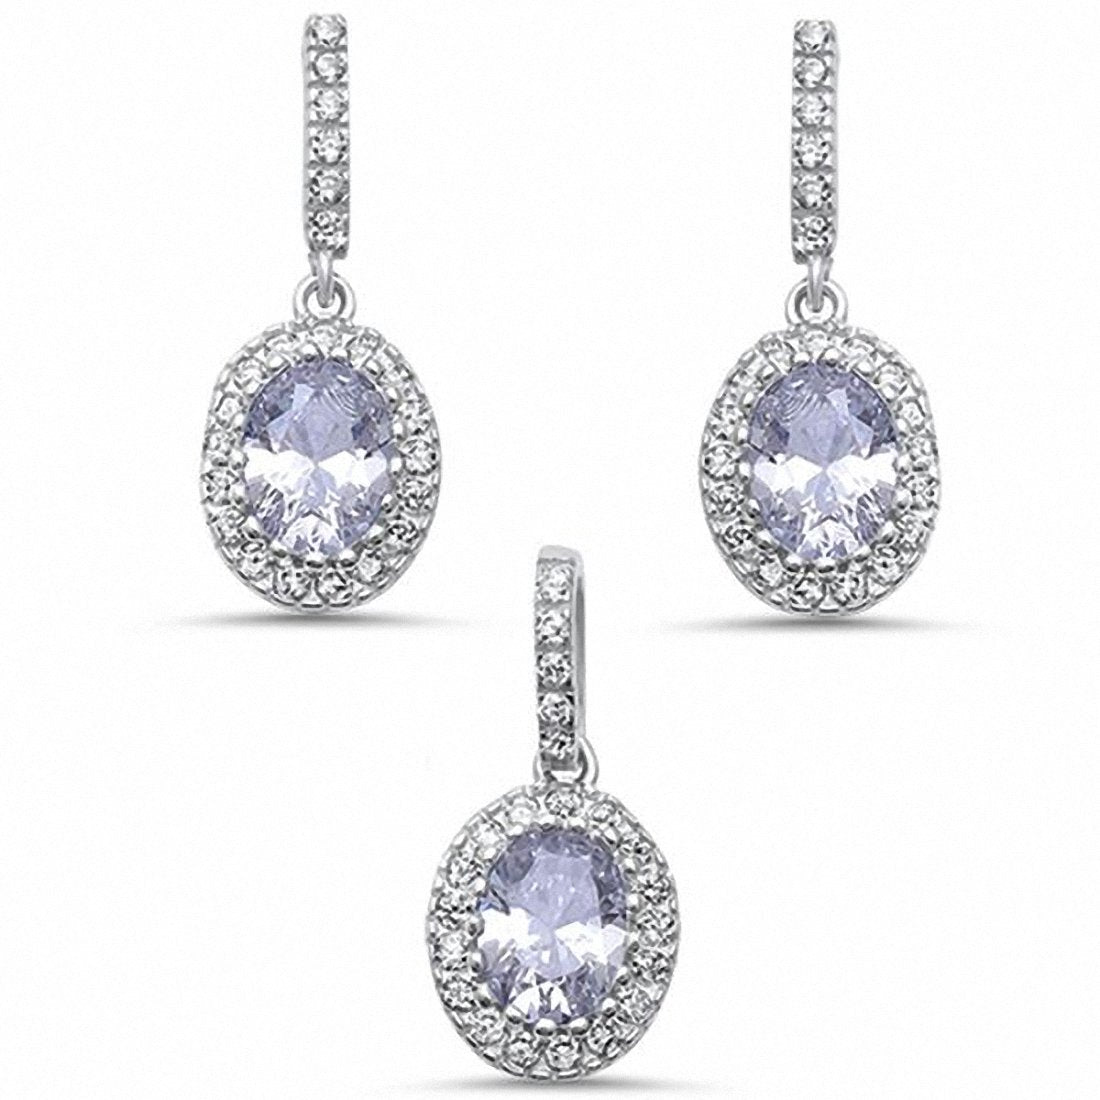 Halo Bridal Jewelry Set Simulated Oval Round Cubic Zirconia 925 Sterling Silver Choose Color